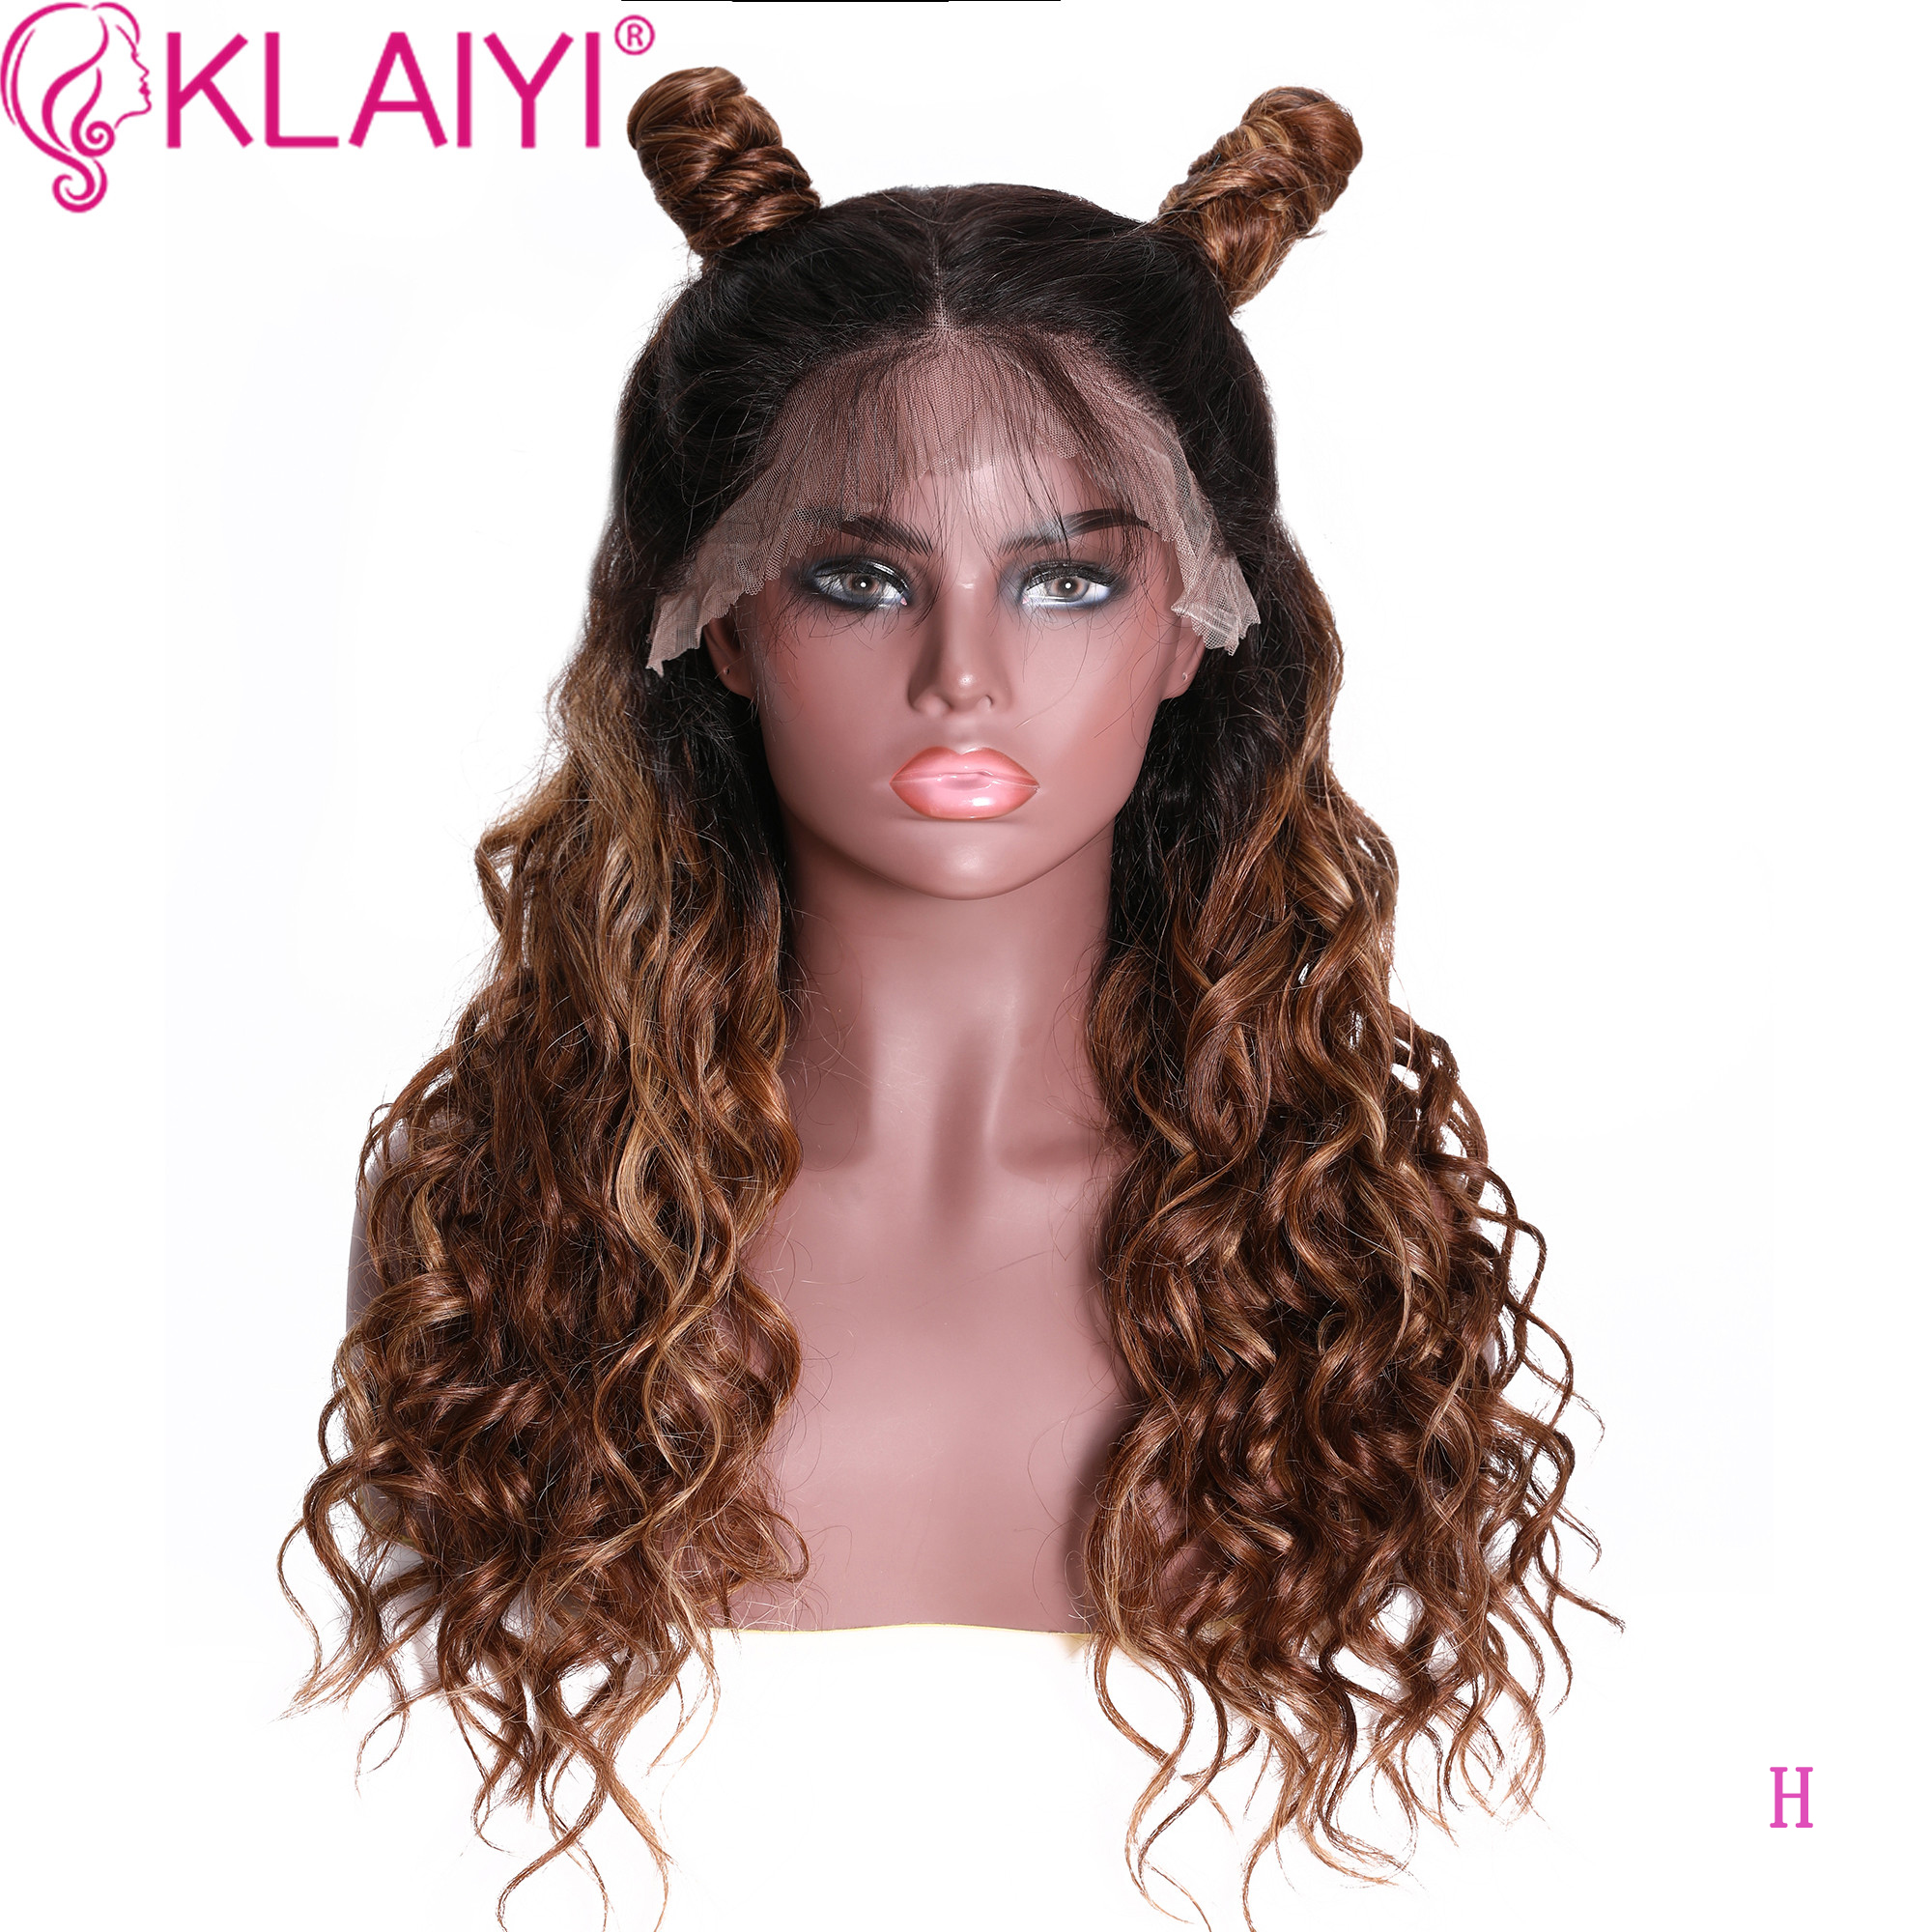 Klaiyi Hair New Curly 13*4 Lace Front Wigs T4/27 Ombre Brazilian Remy Hair With Pre-Plucked Wig 150%Denisty Human Hair Wig 12-24